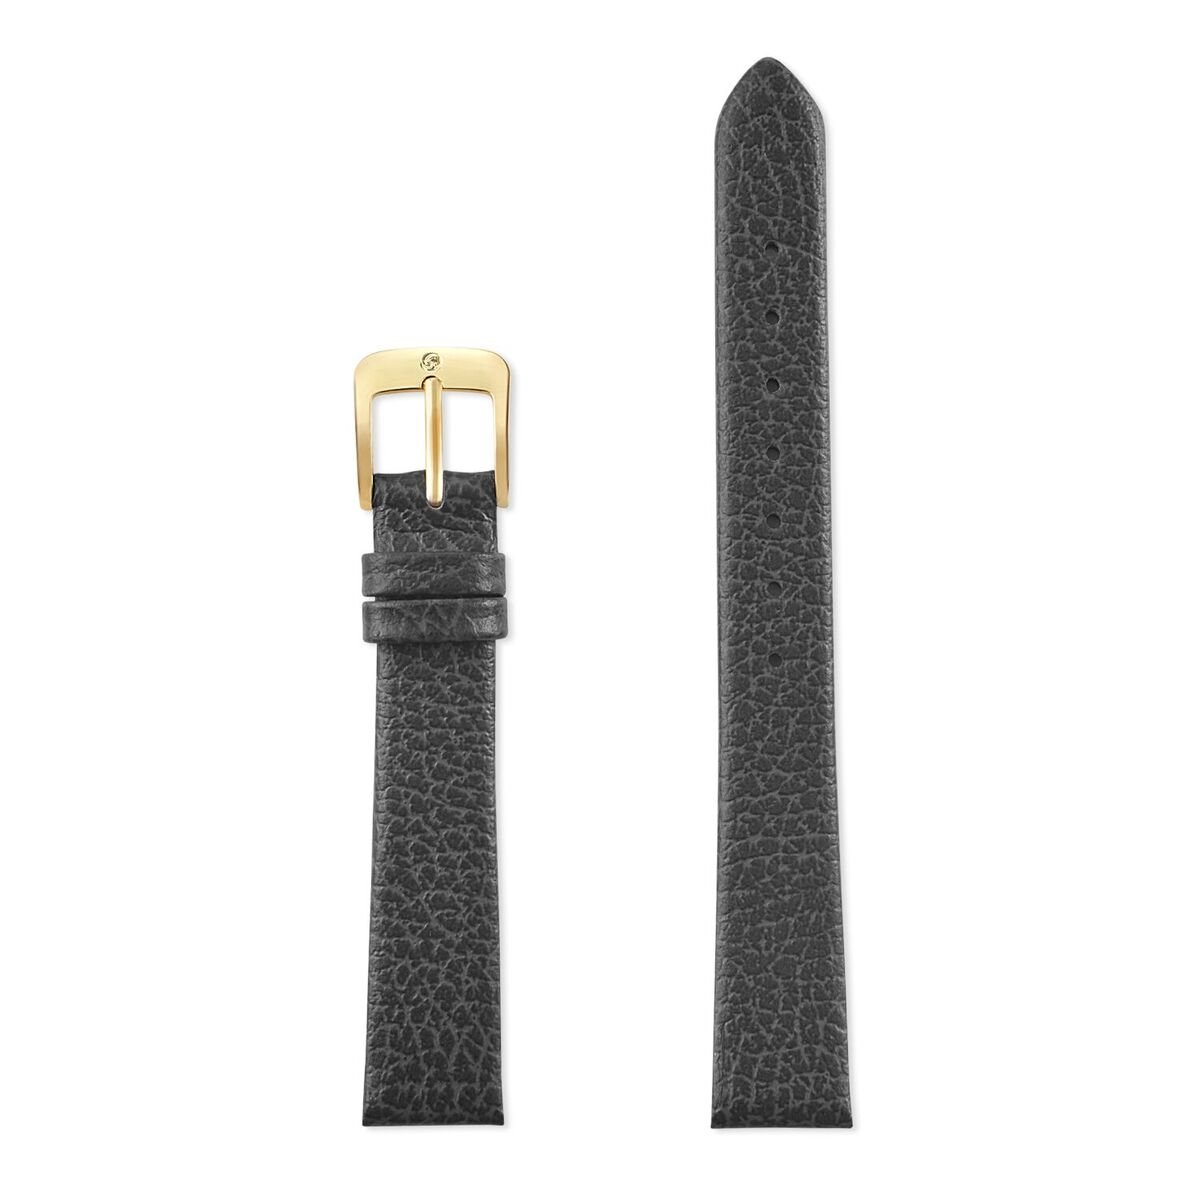 Speidel Genuine Leather Watch Band 12mm Black Fine Cowhide Replacement Strap, Stainless Steel Metal Buckle Clasp, Watchband Fits Most Watch Brands by Speidel (Image #2)